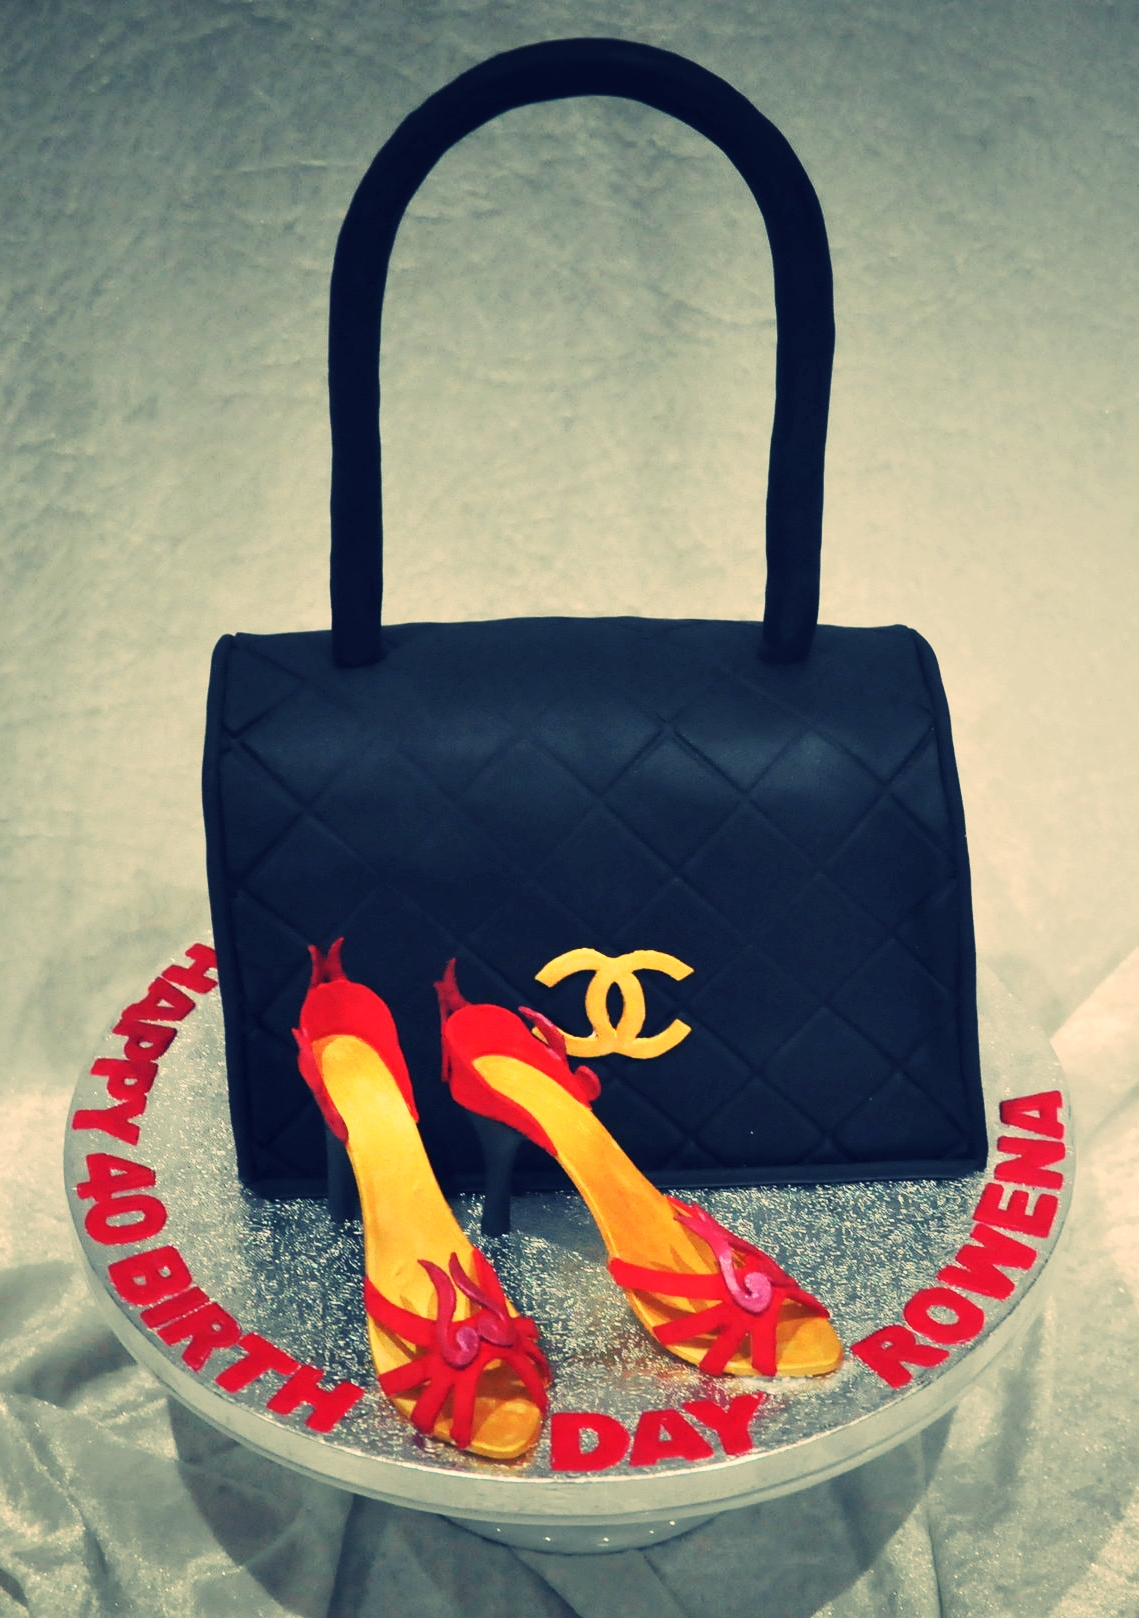 Stiletto shoe handbag - What girl about town wouldn't love this classy handbag and stiletto cake for her birthday.